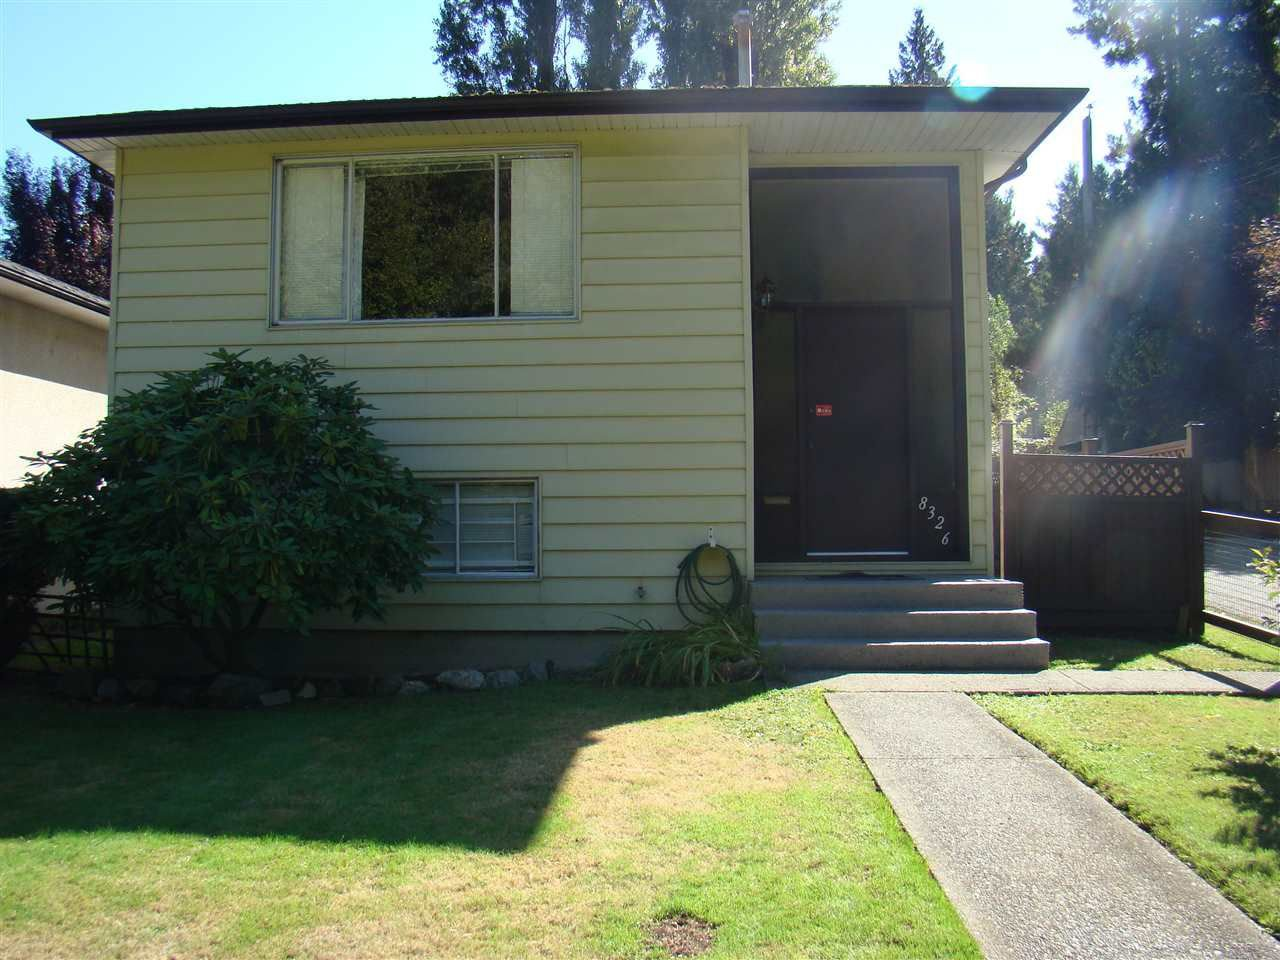 Main Photo: 8326 17TH AVENUE in Burnaby: East Burnaby House for sale (Burnaby East)  : MLS®# R2211776